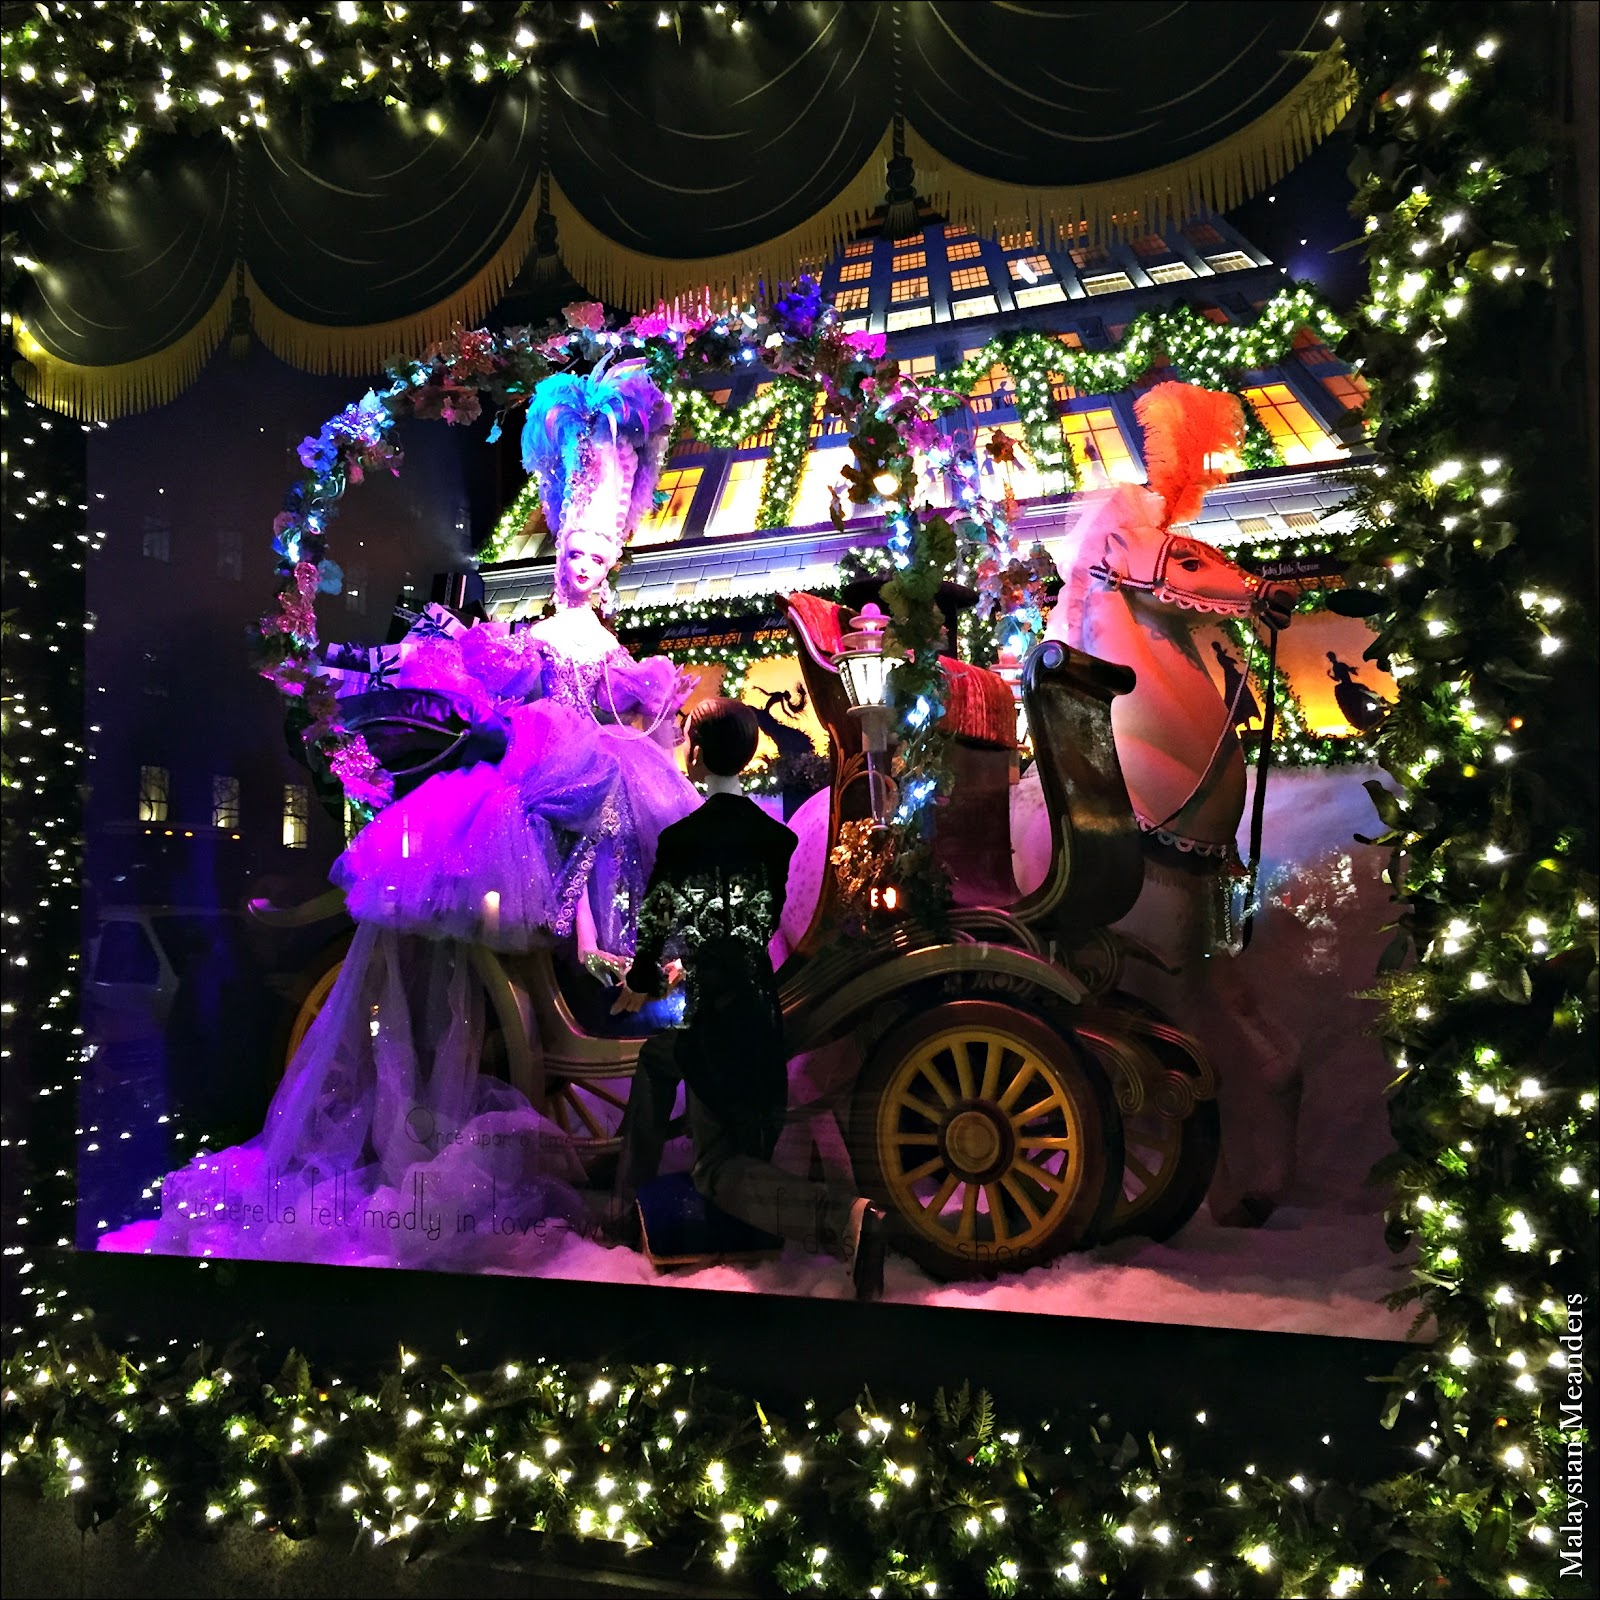 Saks Fifth Avenue Store: Malaysian Meanders: Saks Fifth Avenue's Enchanting Holiday